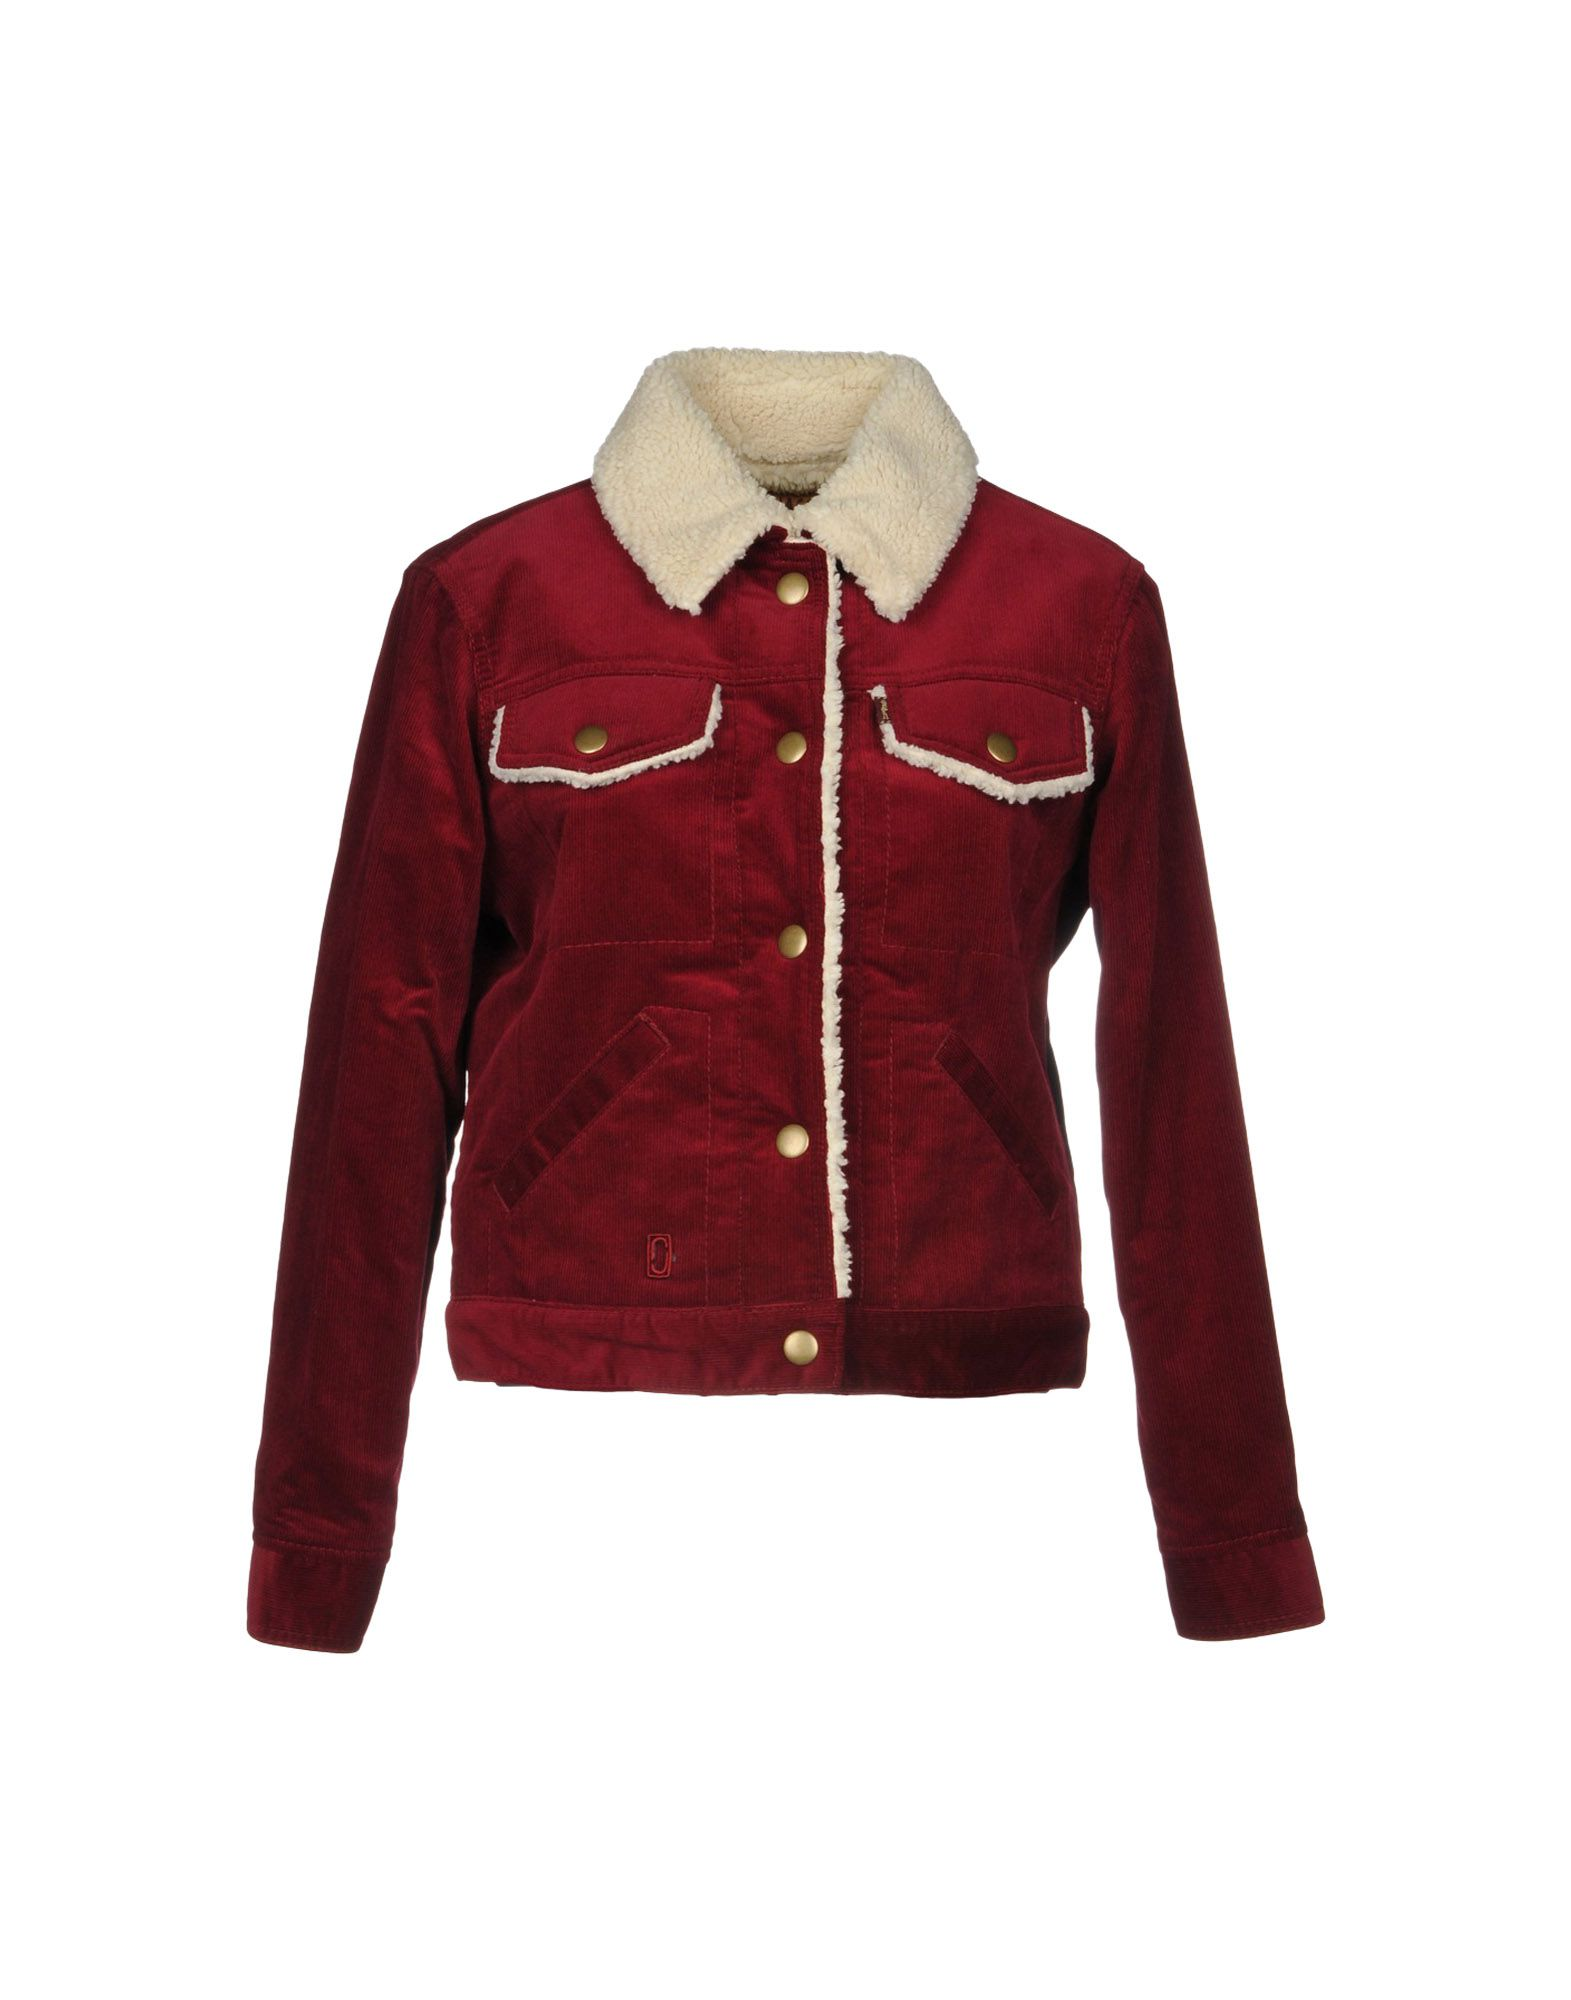 Marc Jacobs Jacket Women Marc Jacobs Jackets Online On Yoox United States 41798356ec